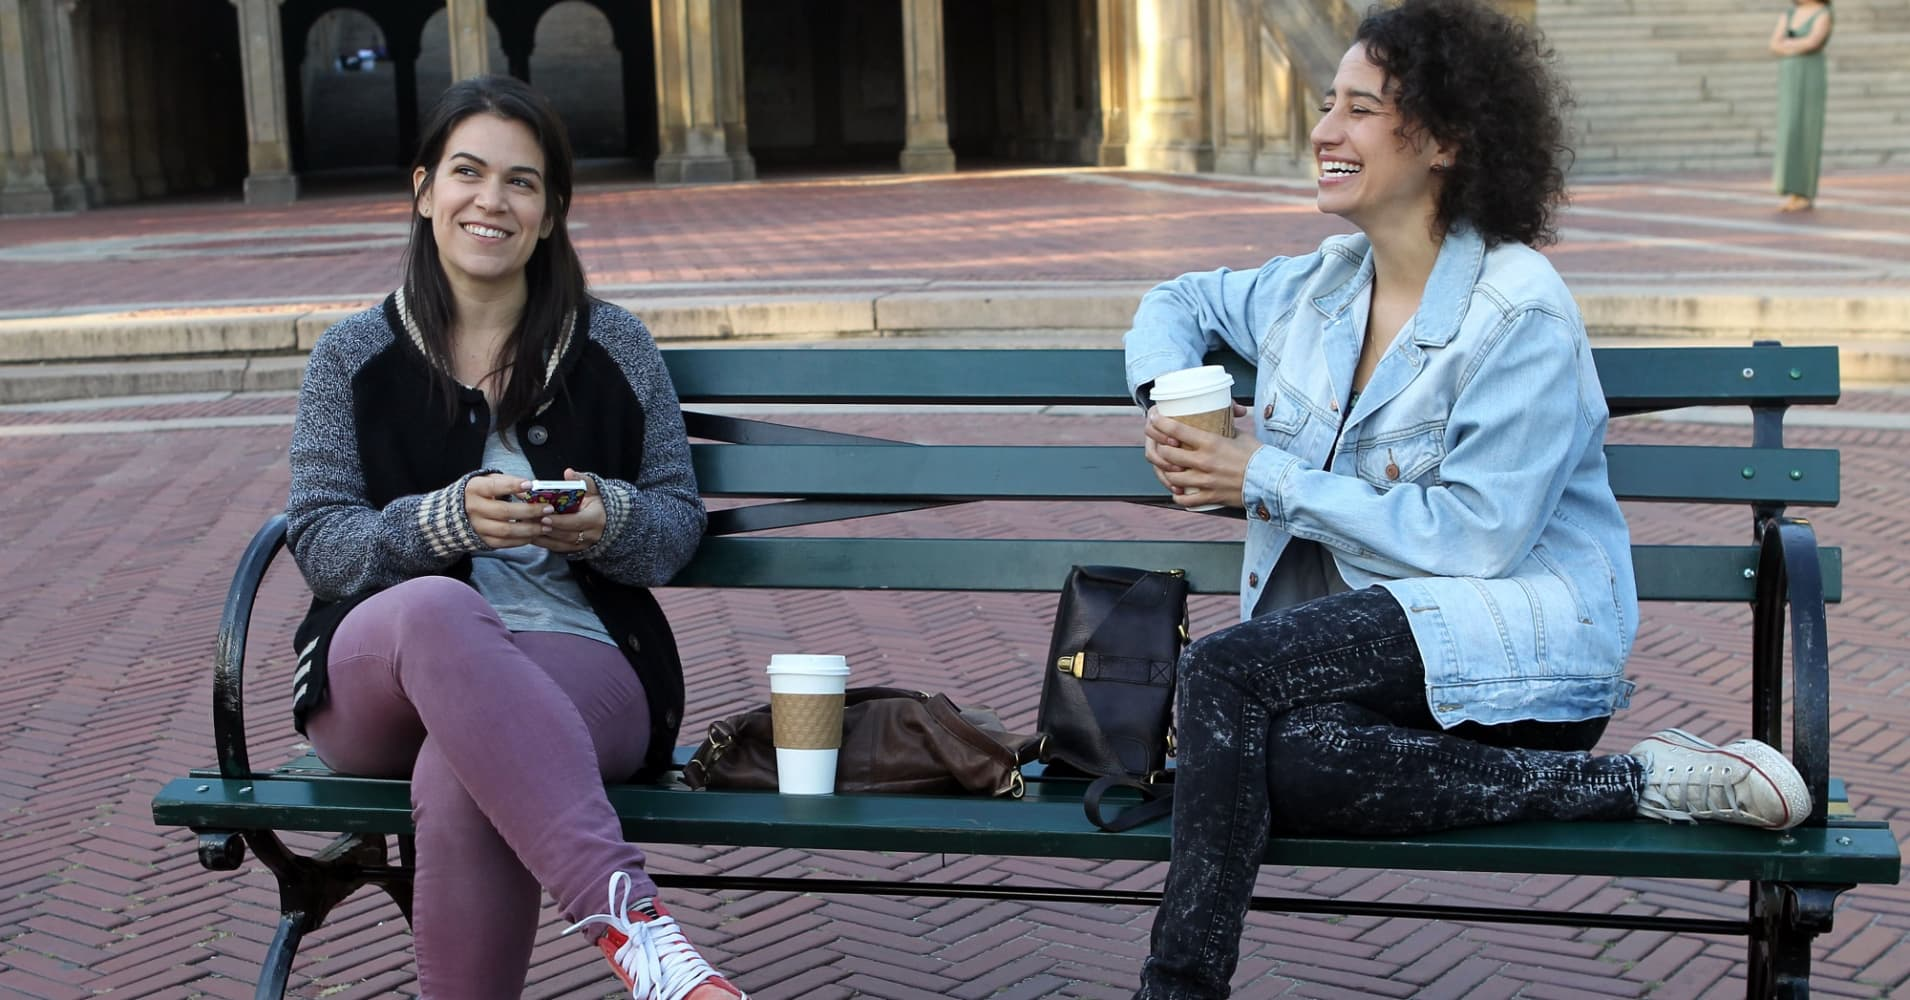 Ilana Glazer, Abbi Jacobson film Comedy Central's 'Broad City' in New York City.